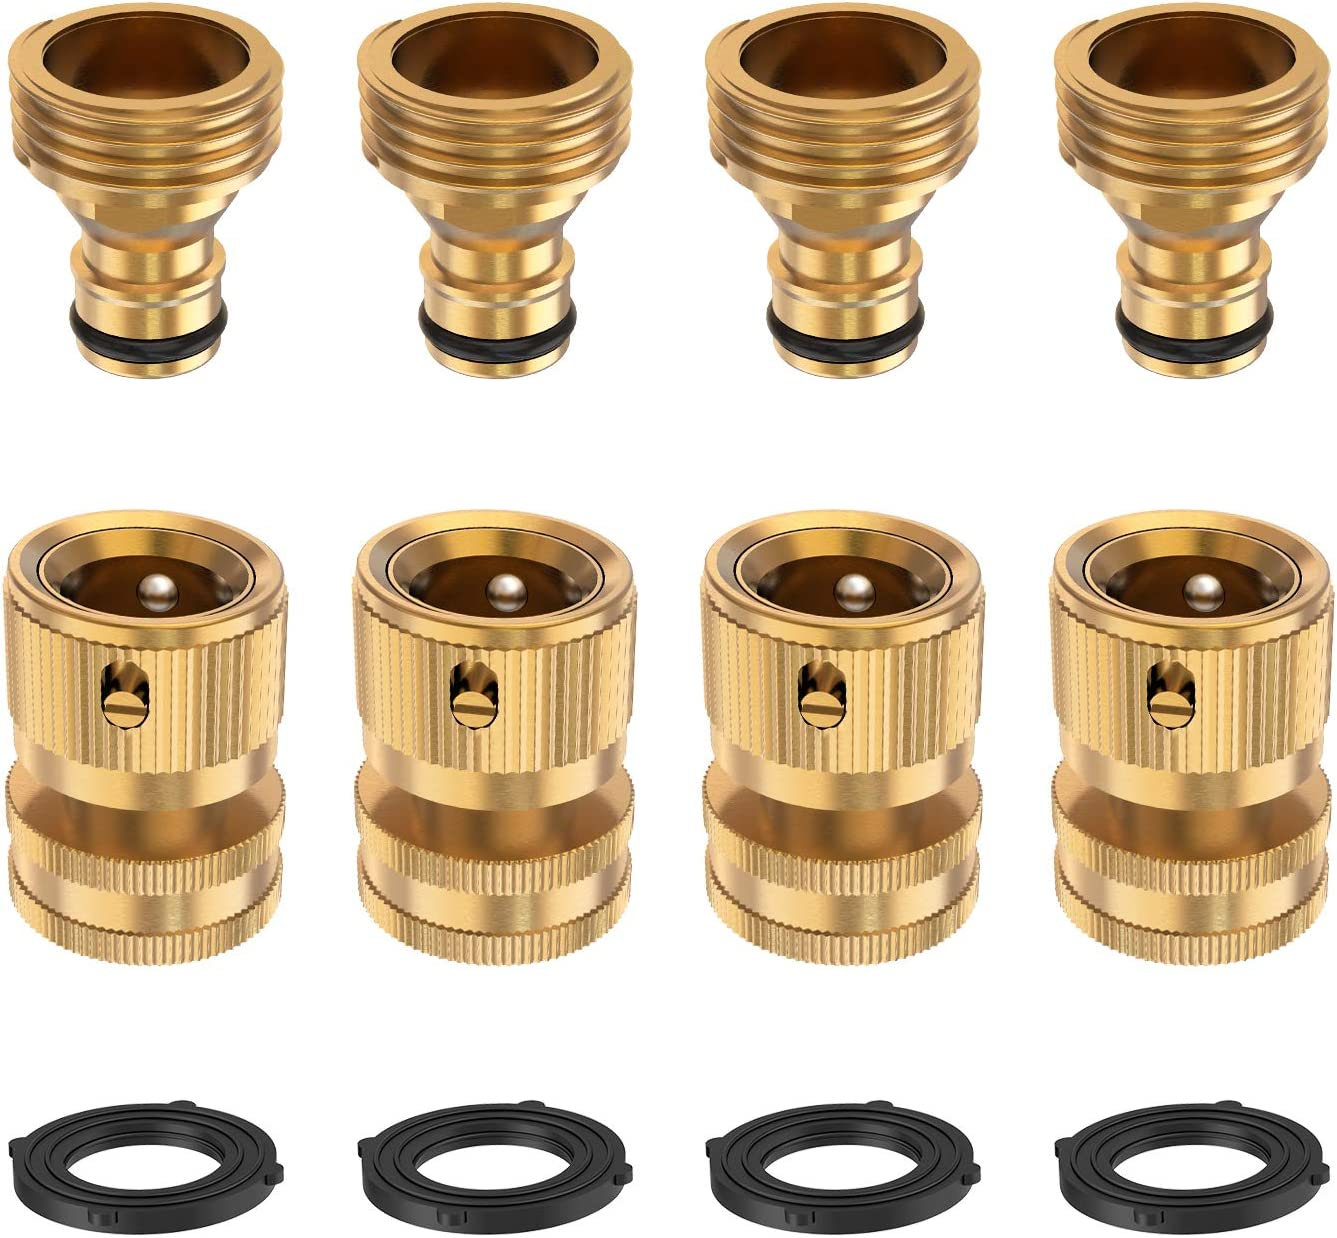 Tikola Garden Hose Brass Quick Connector 4 Sets, 3/4 Inch GHT Thread Water Hose Fittings Female and Male Adapter No Leak